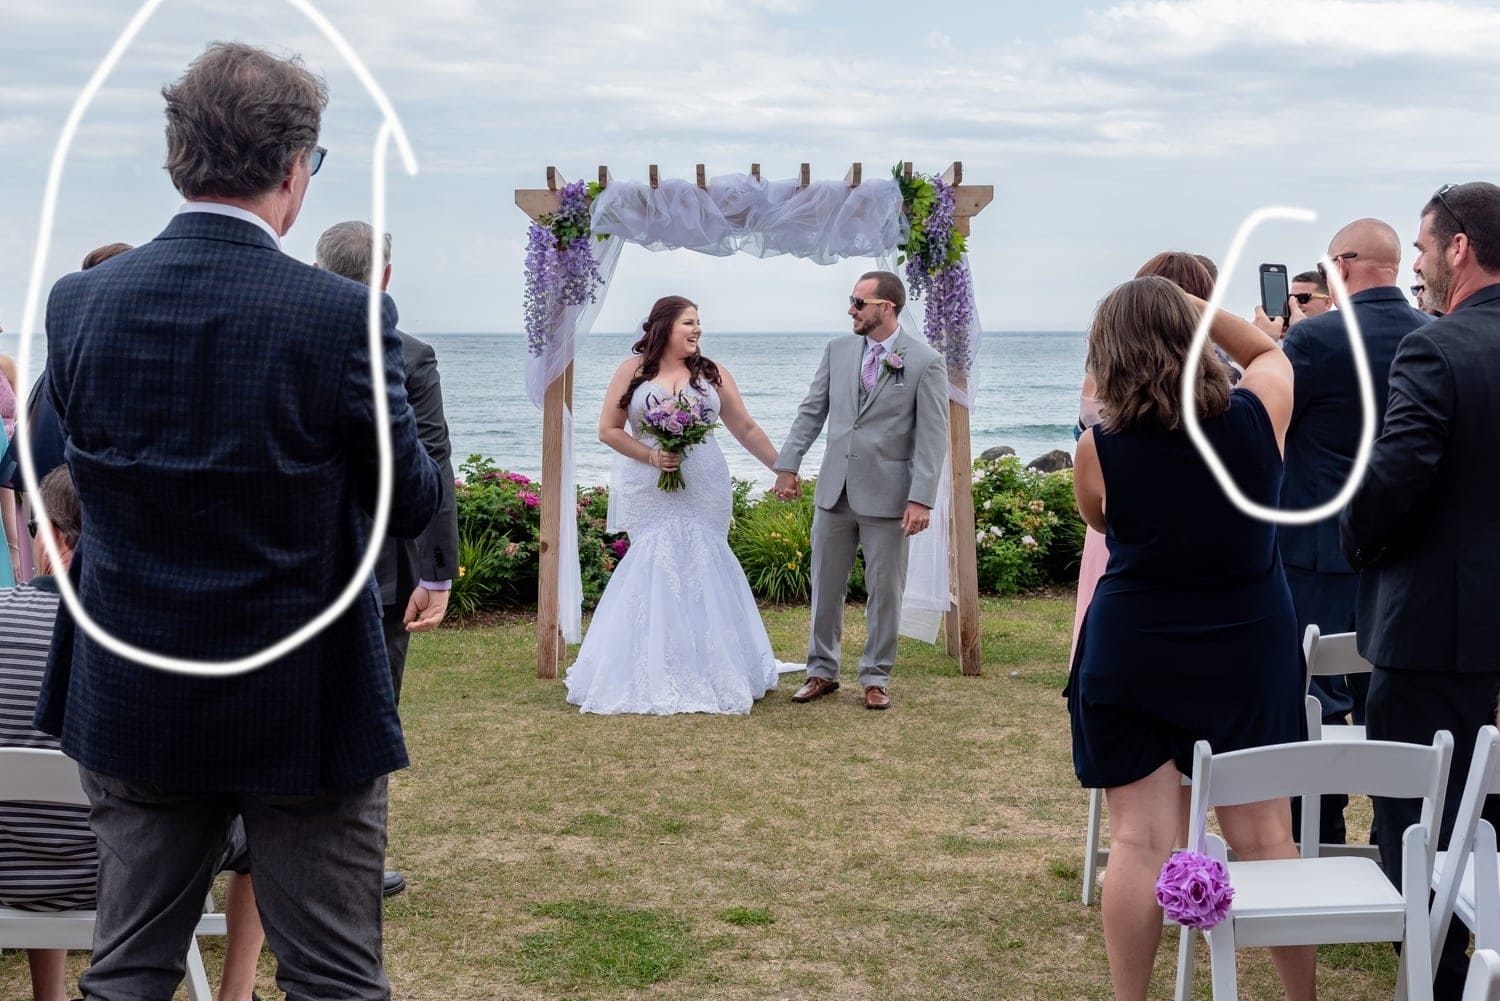 A White Point wedding and why you might want to consider and unplugged wedding ceremony.